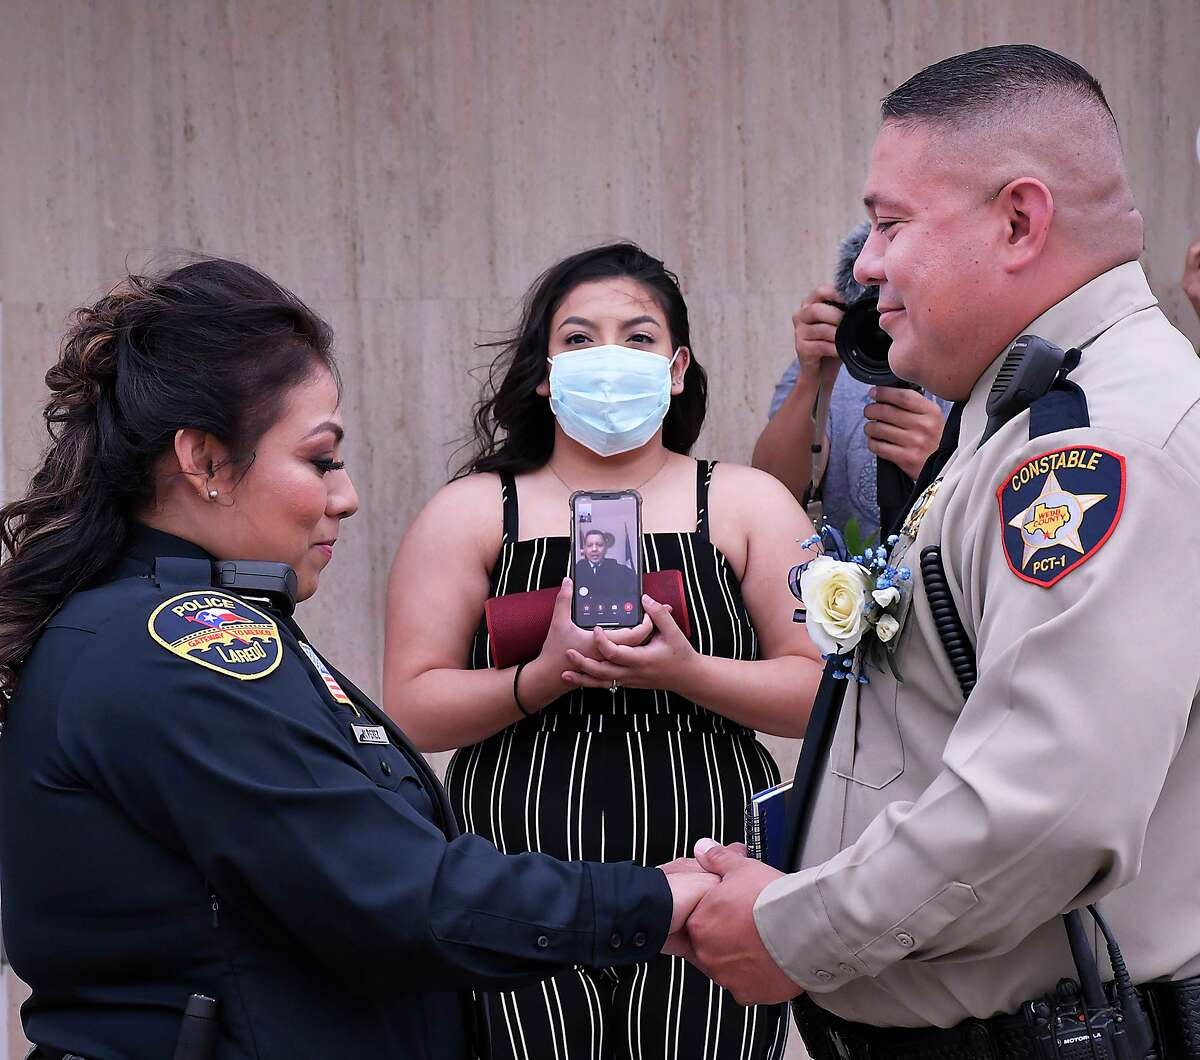 As a result of the COVID-19 virus, Laredo police officer Mayra Perez and Webb County Precinct 1 Deputy Constable Mario Reyes exchanged wedding vows in a virtual ceremony, Friday, May 8, as Justice of the Peace Precinct 2 Place 2, Danny Dominguez conducted the ceremony from his office via a cellphone.